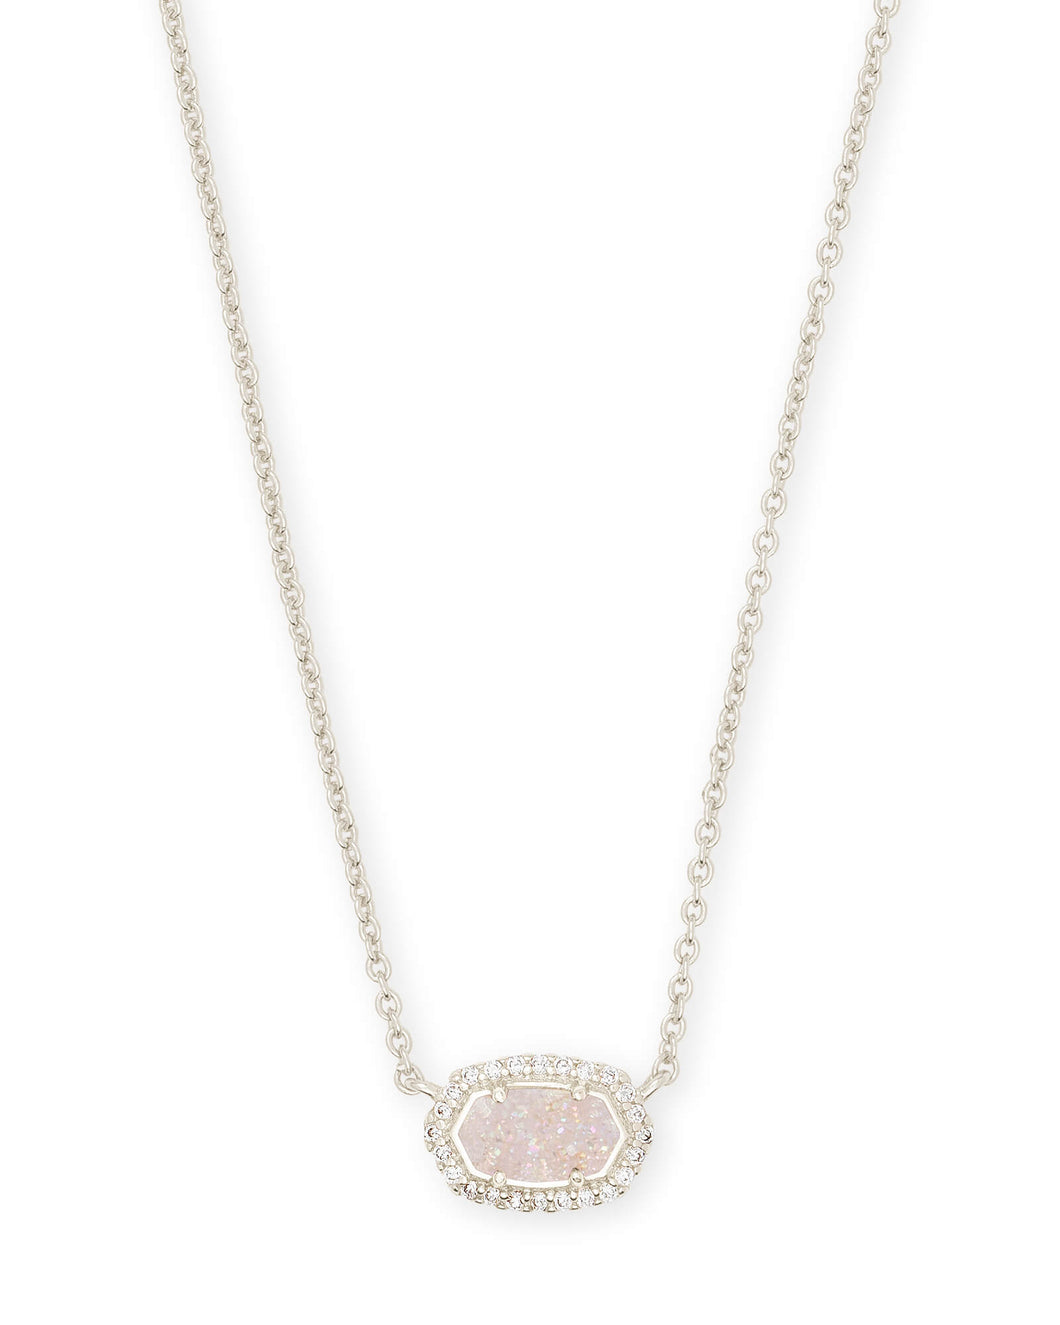 Kendra Scott Chelsea Silver Pendant Necklace in Iridescent Drusy